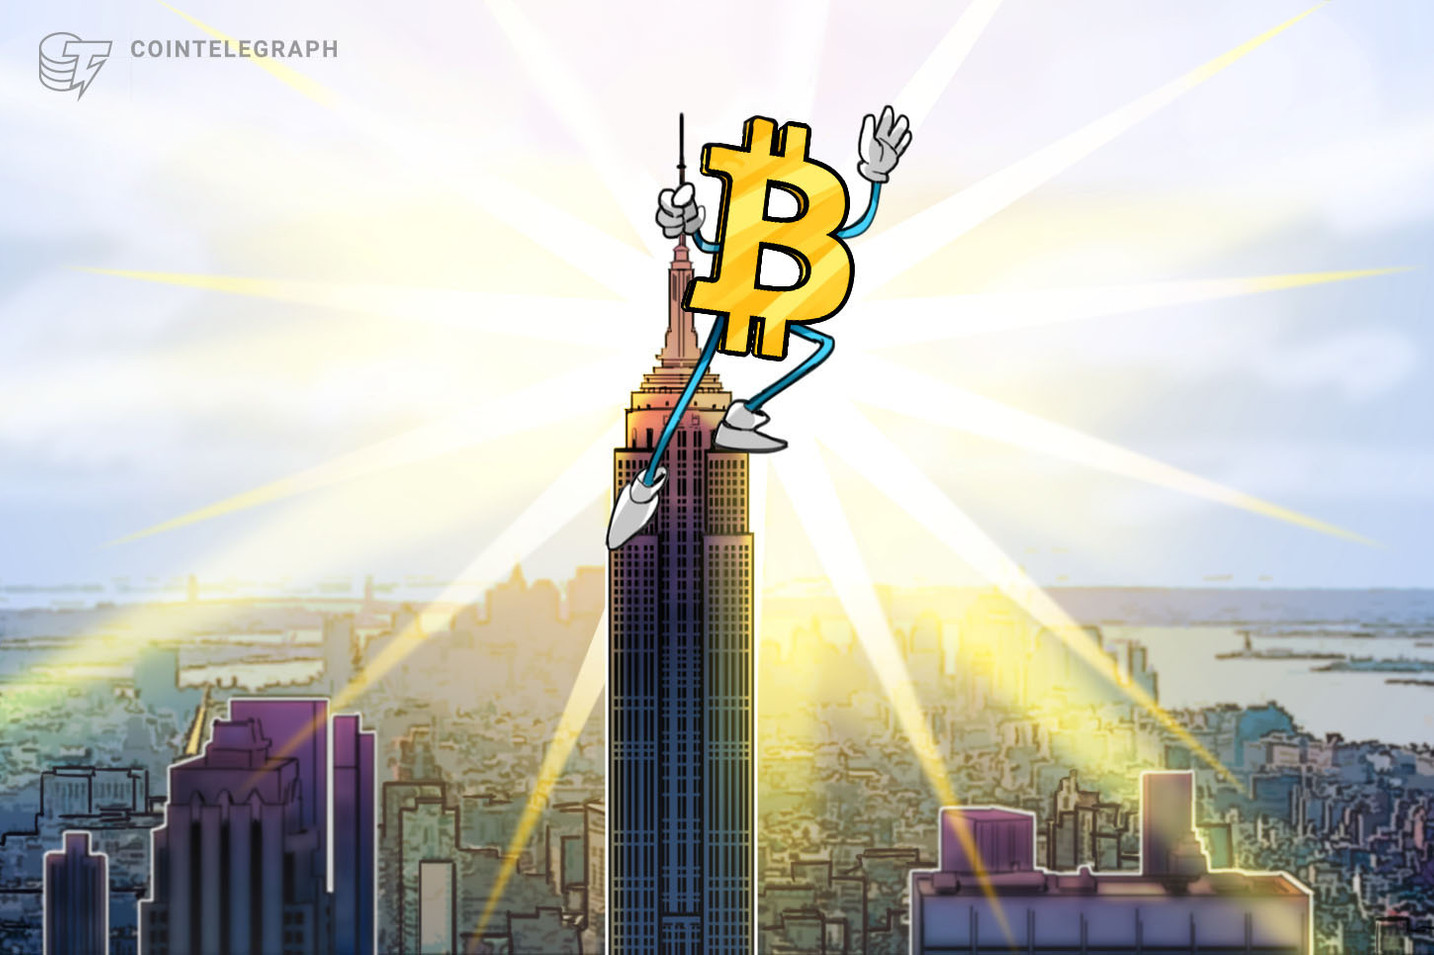 NYC's mayoral frontrunner pledges to turn city into Bitcoin hub